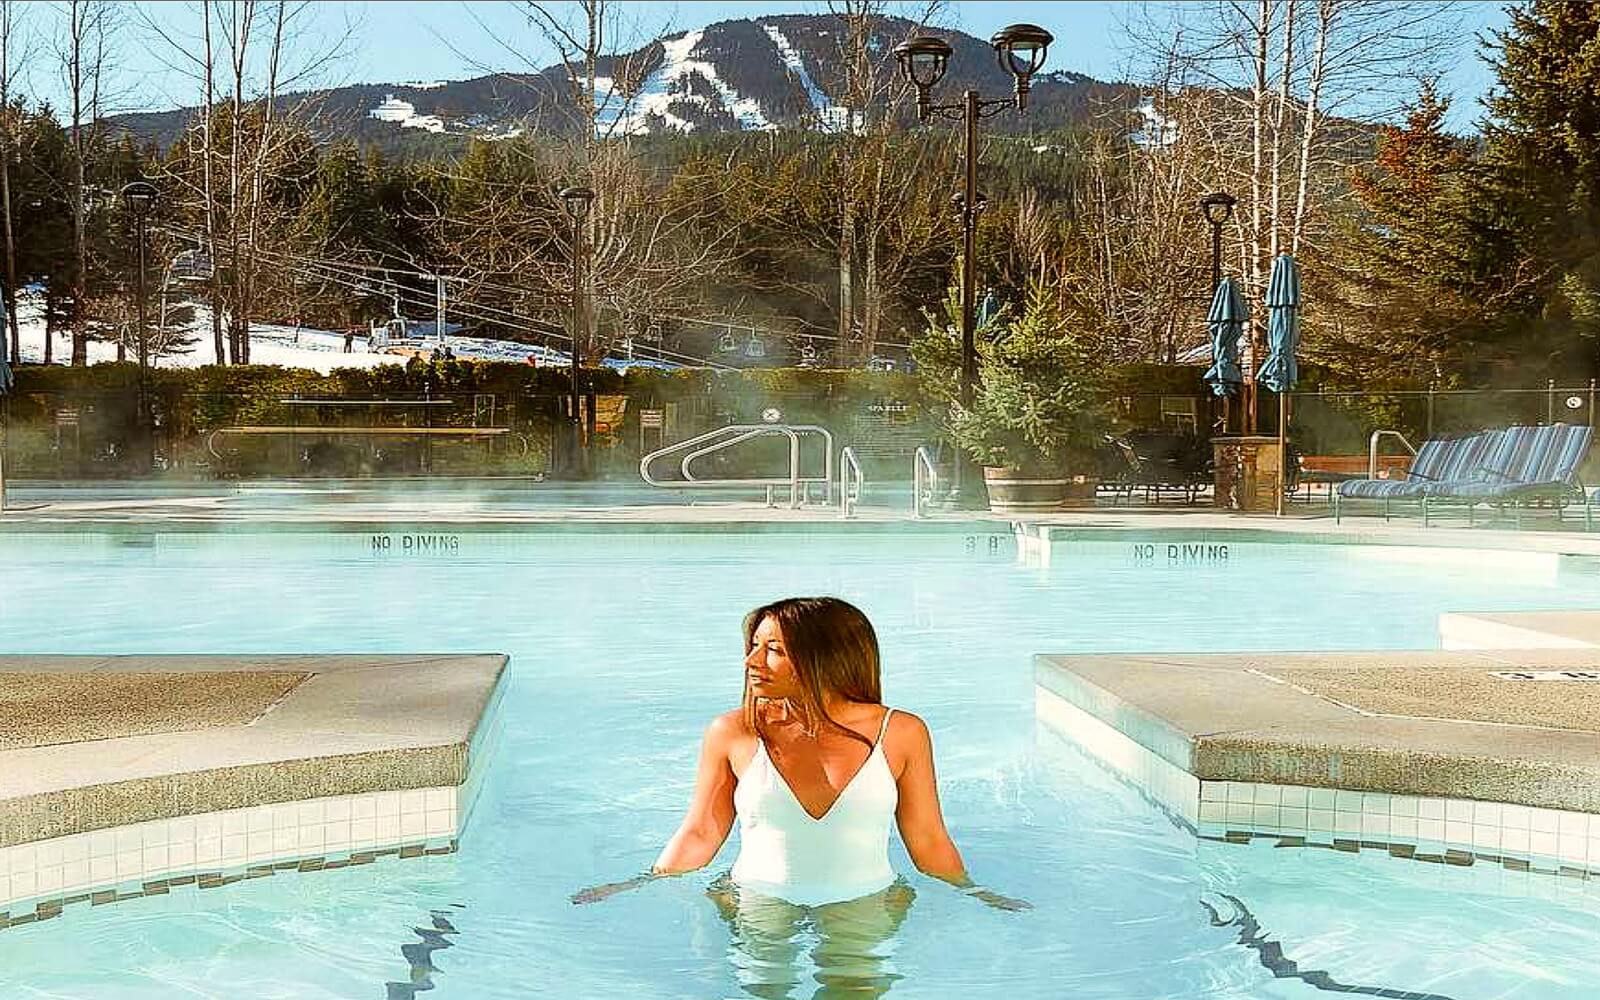 A woman enjoys the pool on a winters day in Whistler